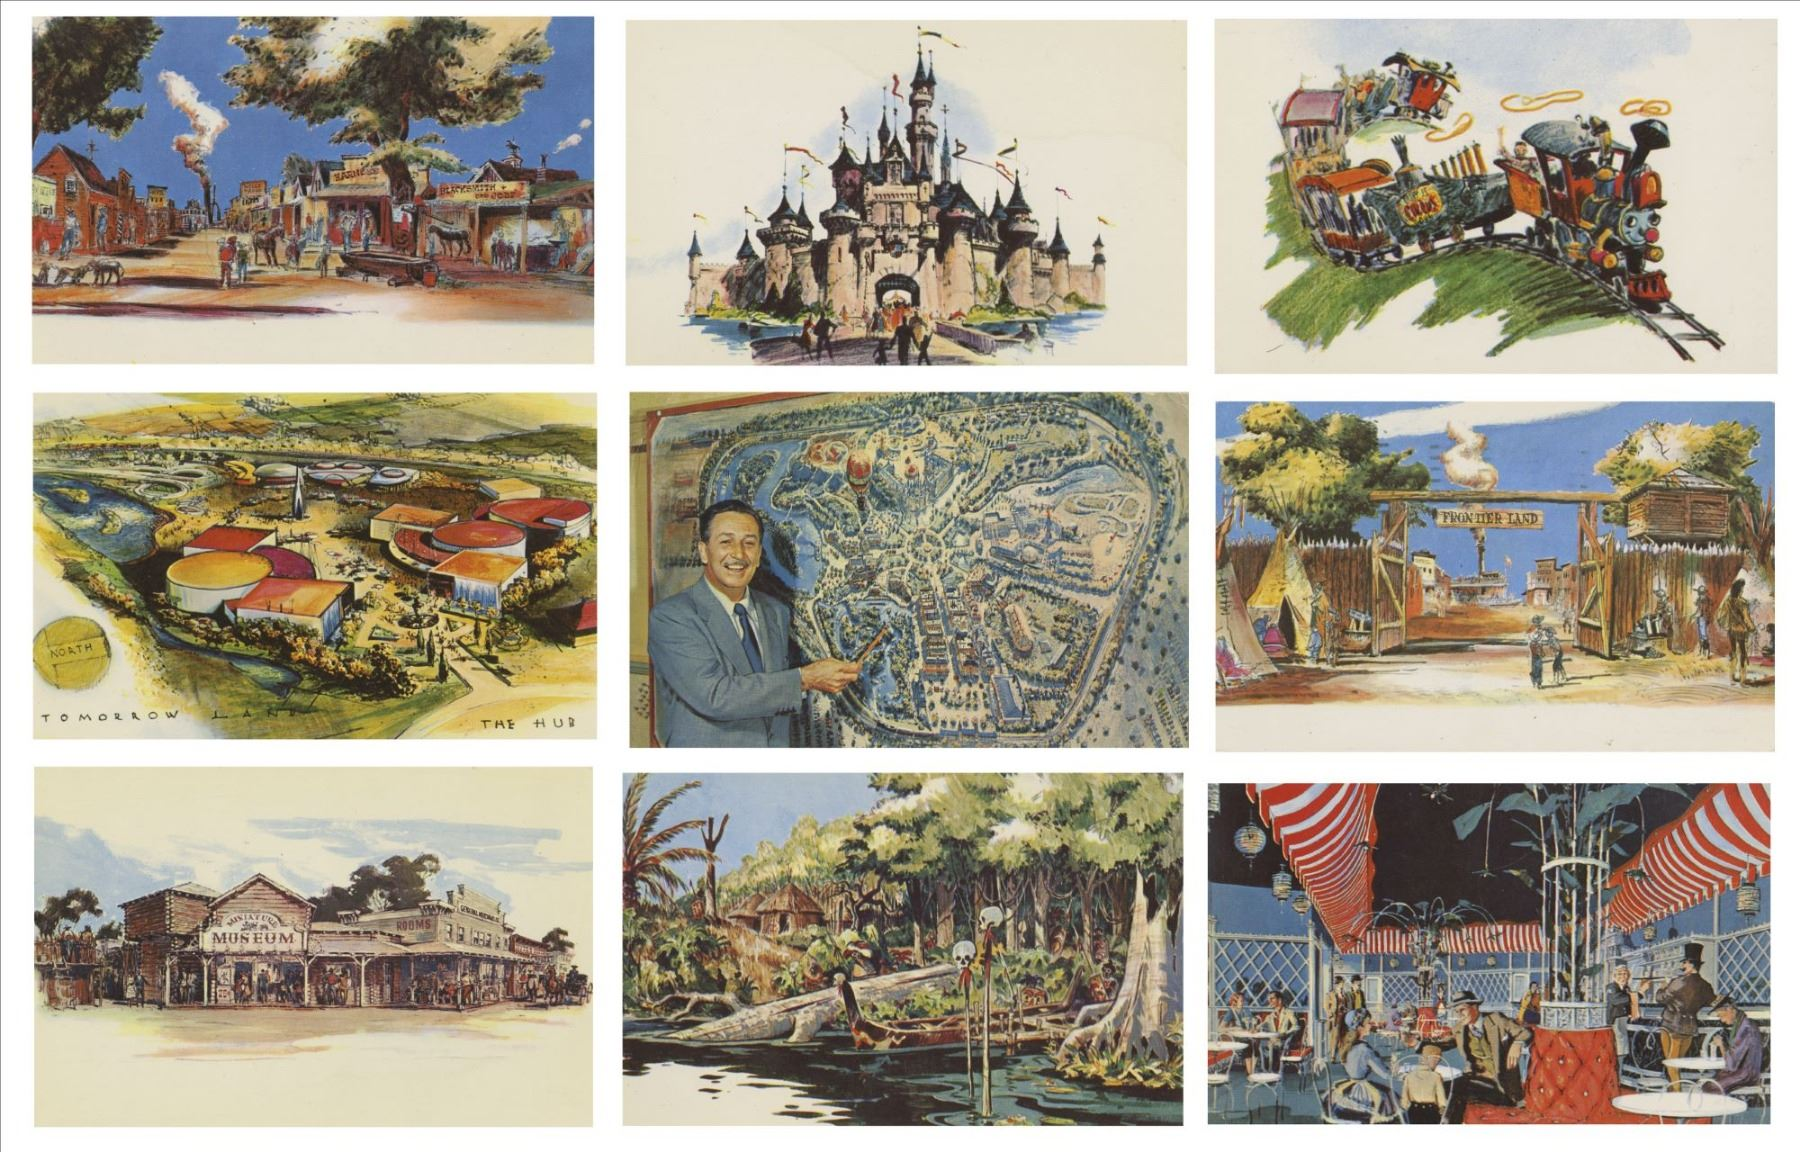 Complete Set of the First 23 Disneyland Postcards